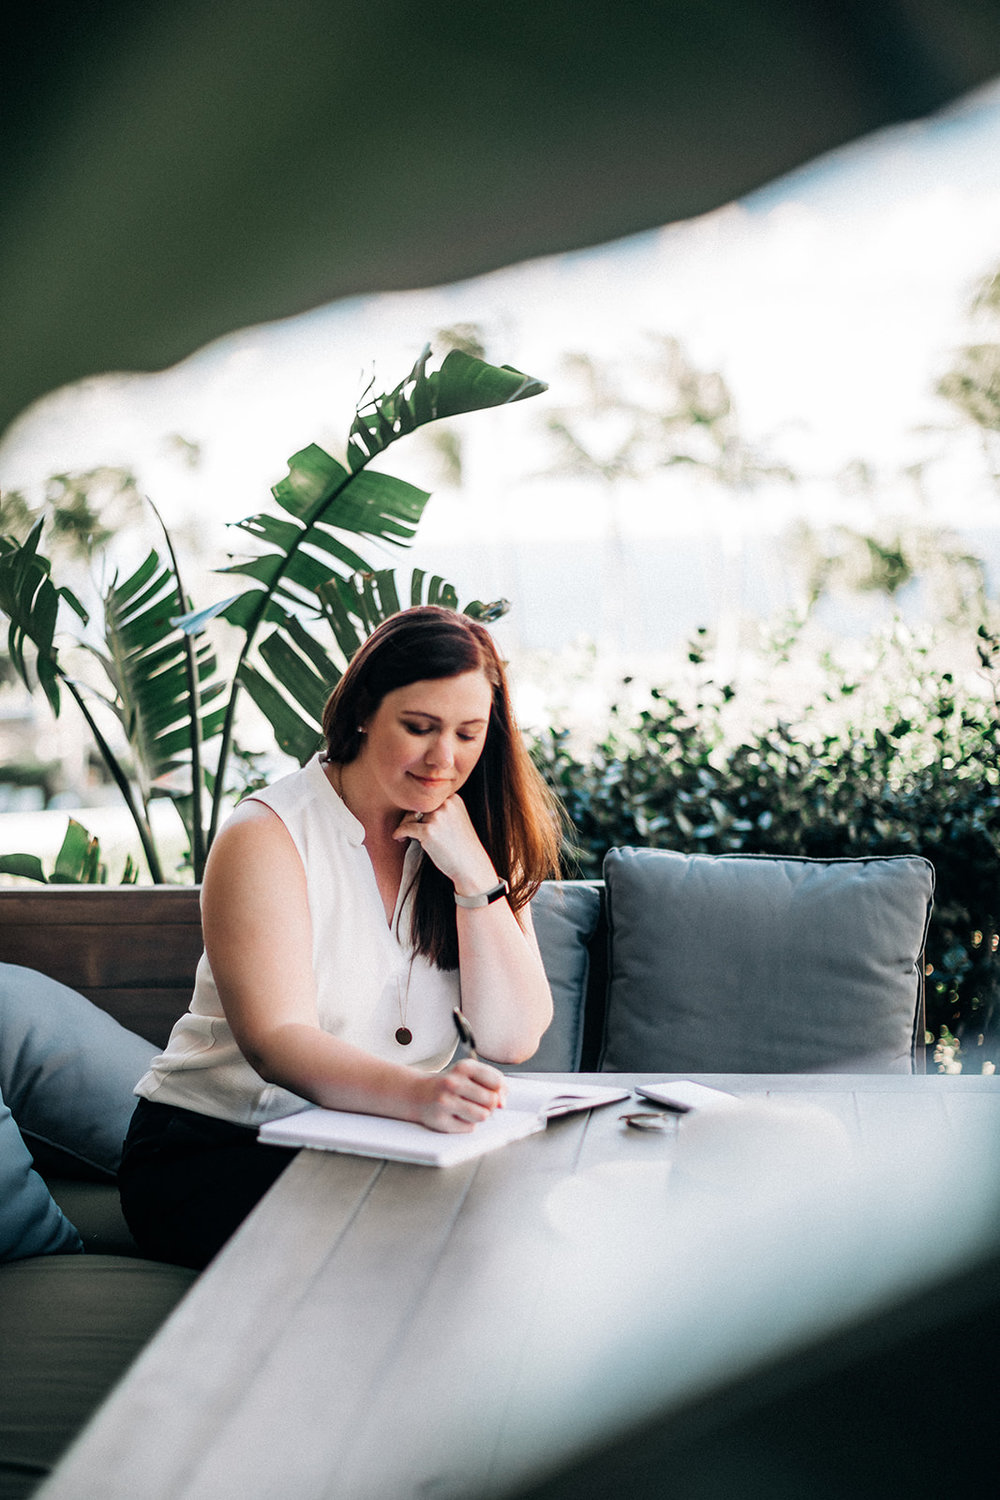 Want help creating the right systems and workflows for your business? - Schedule a free consultation call today! On the call we'll chat about your dream and how I can help you make it a reality. Plus give you a few steps to take immediately after the call to get you started (because I'm all about implementation).